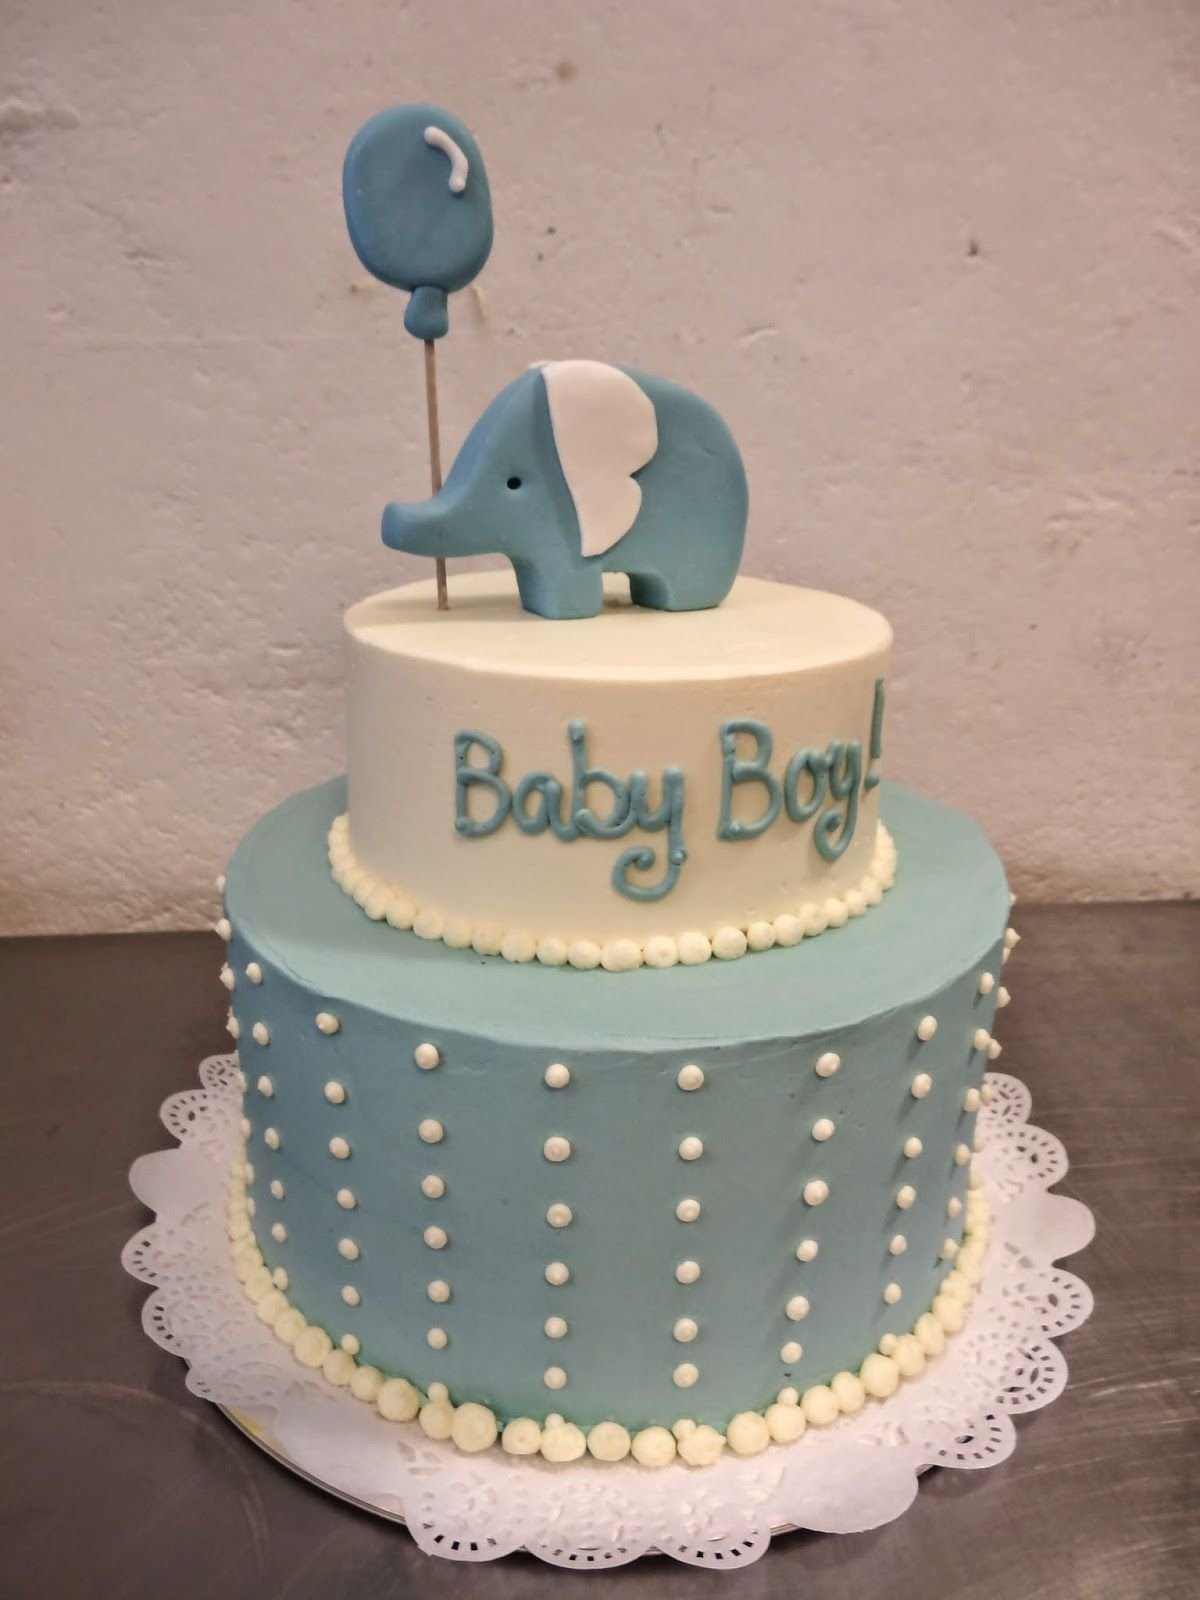 Cake Flavor Ideas For Baby Shower : Boy Baby Shower Cakes Baby Shower Cakes Pinterest ...